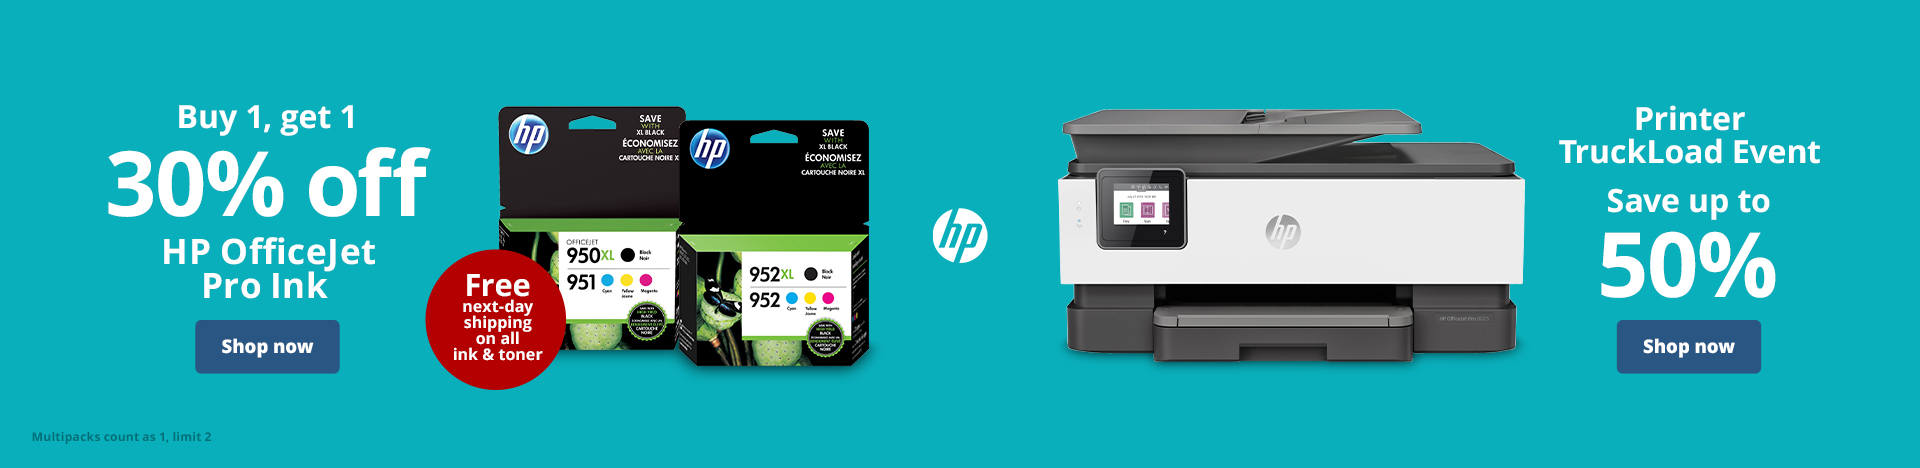 Buy 1 Get 1 30% Off HP ink for OfficeJet Pro Printers. Limit 2 | Printer Truckload Event. Save up to 50%